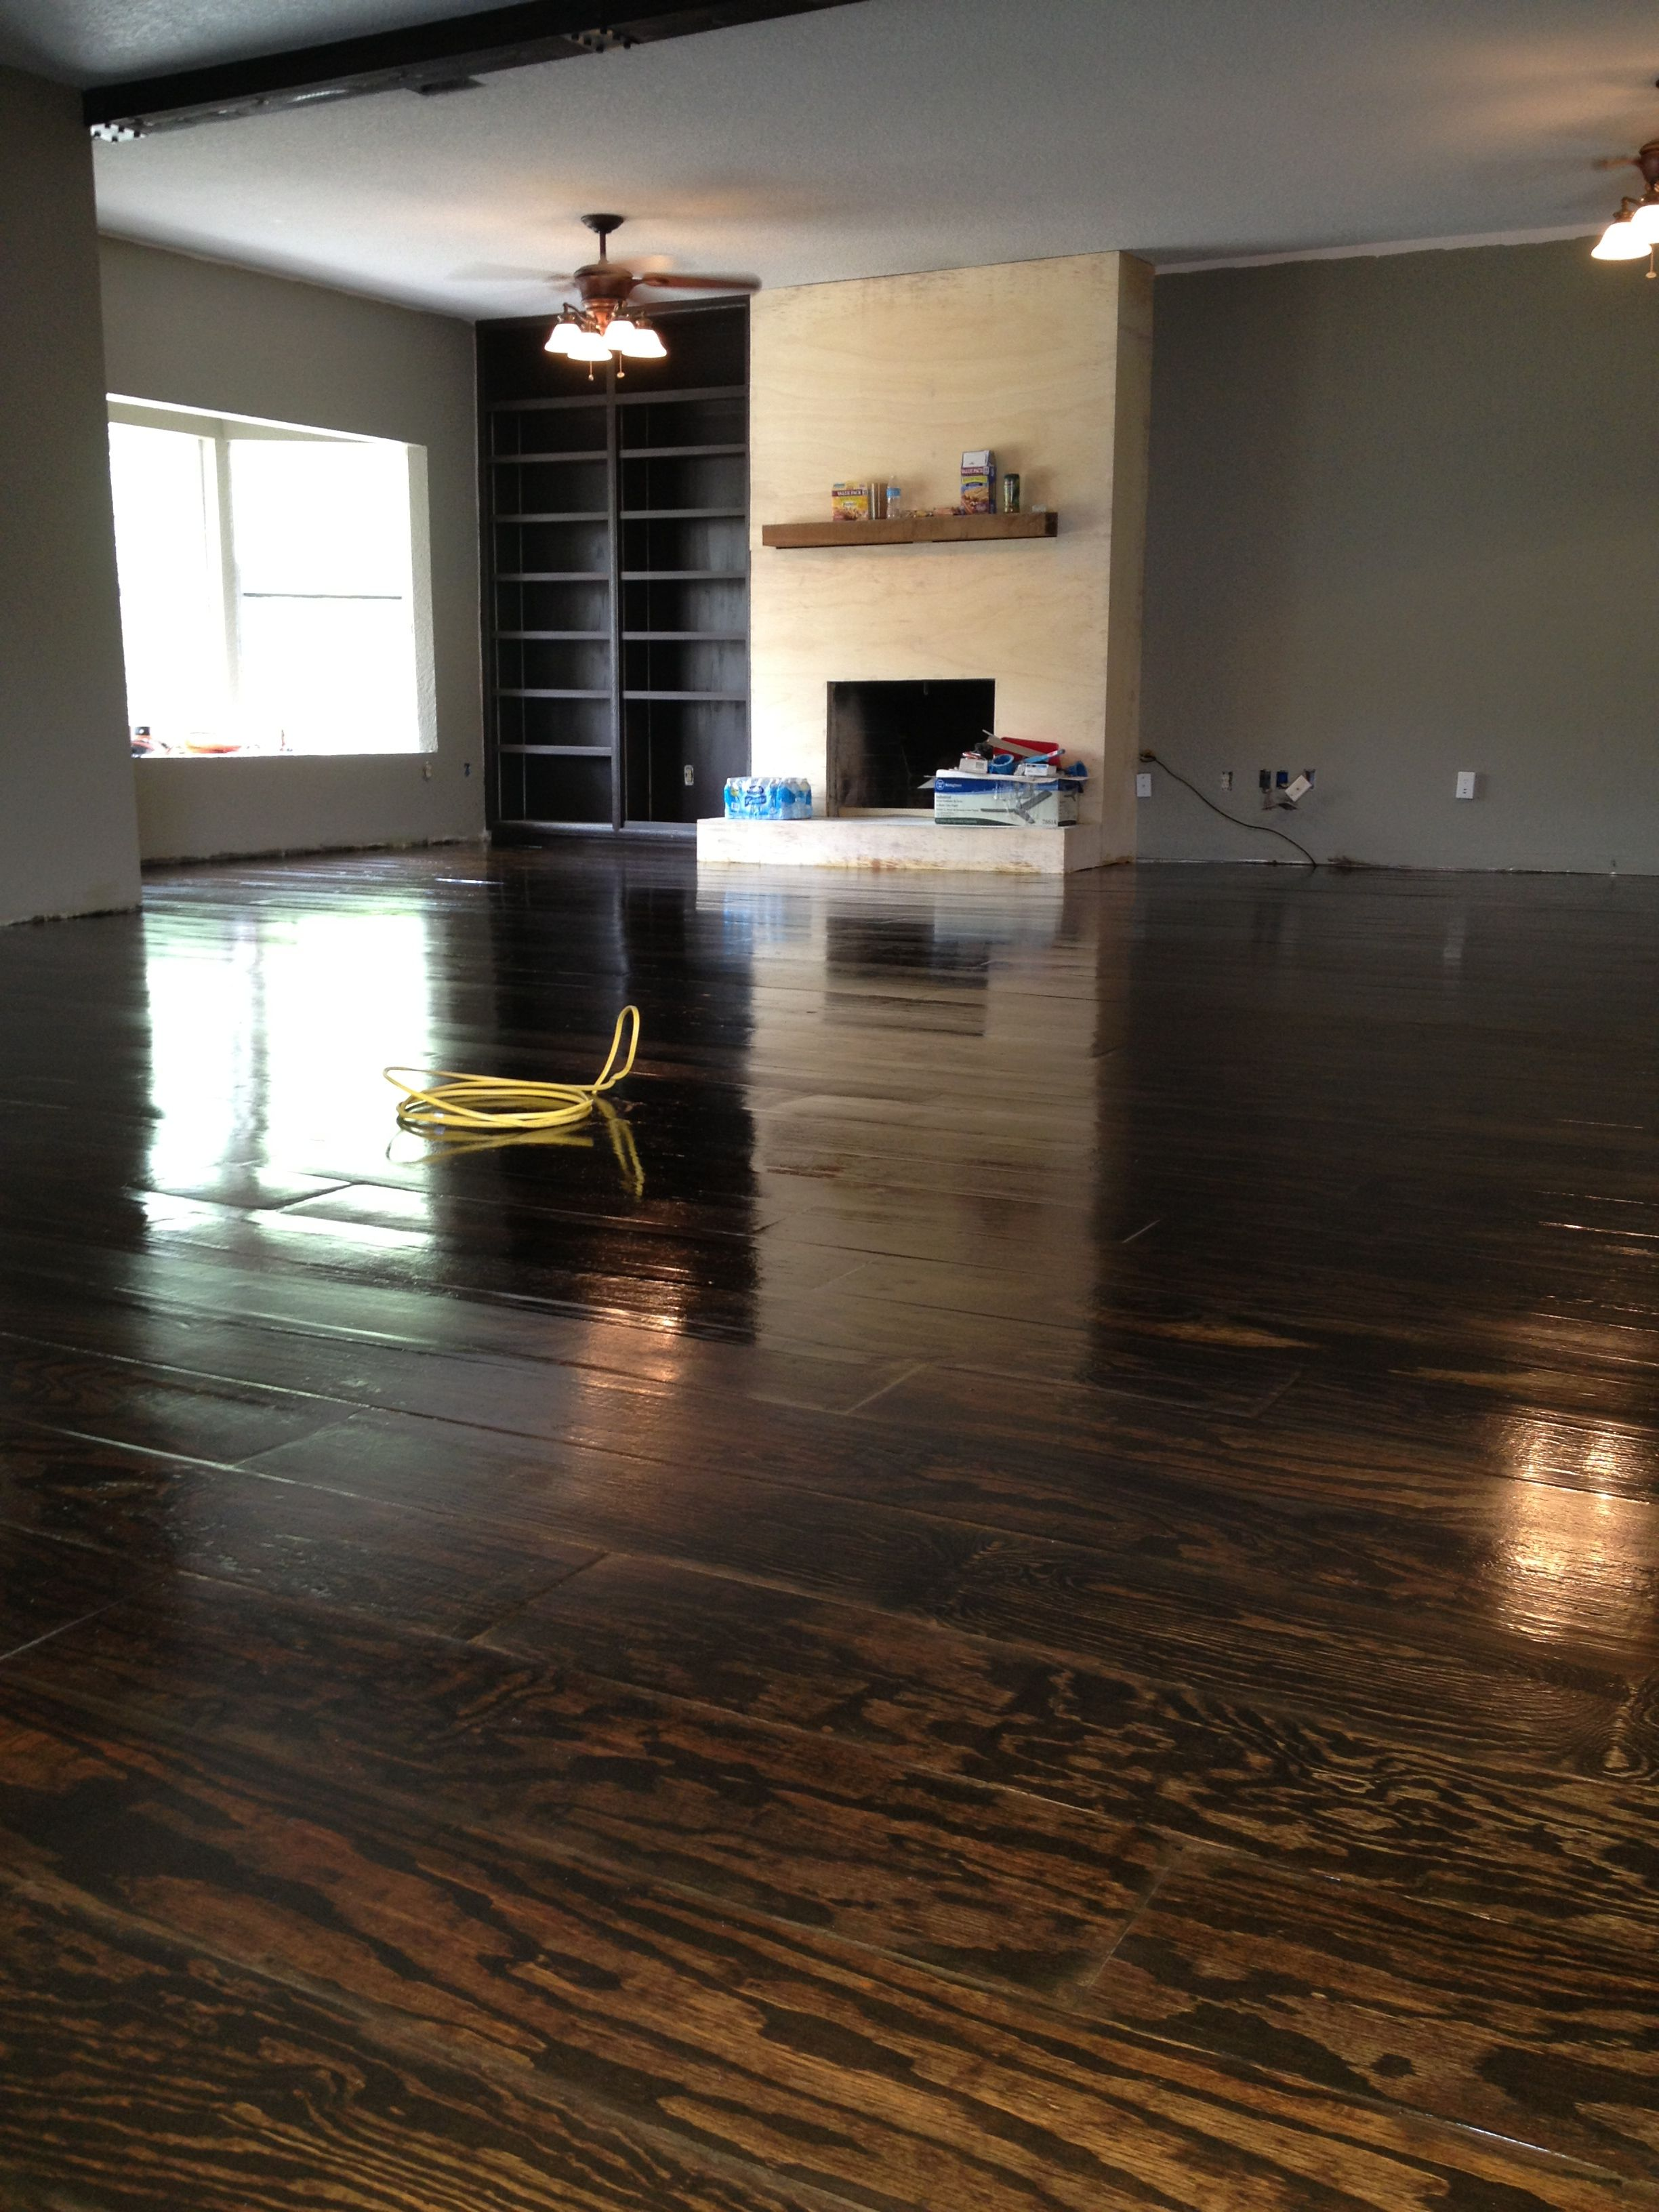 Custom Plywood Flooring Espresso Stain And Four Coats Of Polyurethane These Are Our Floors Yay Plywood Flooring Flooring Plywood Floor